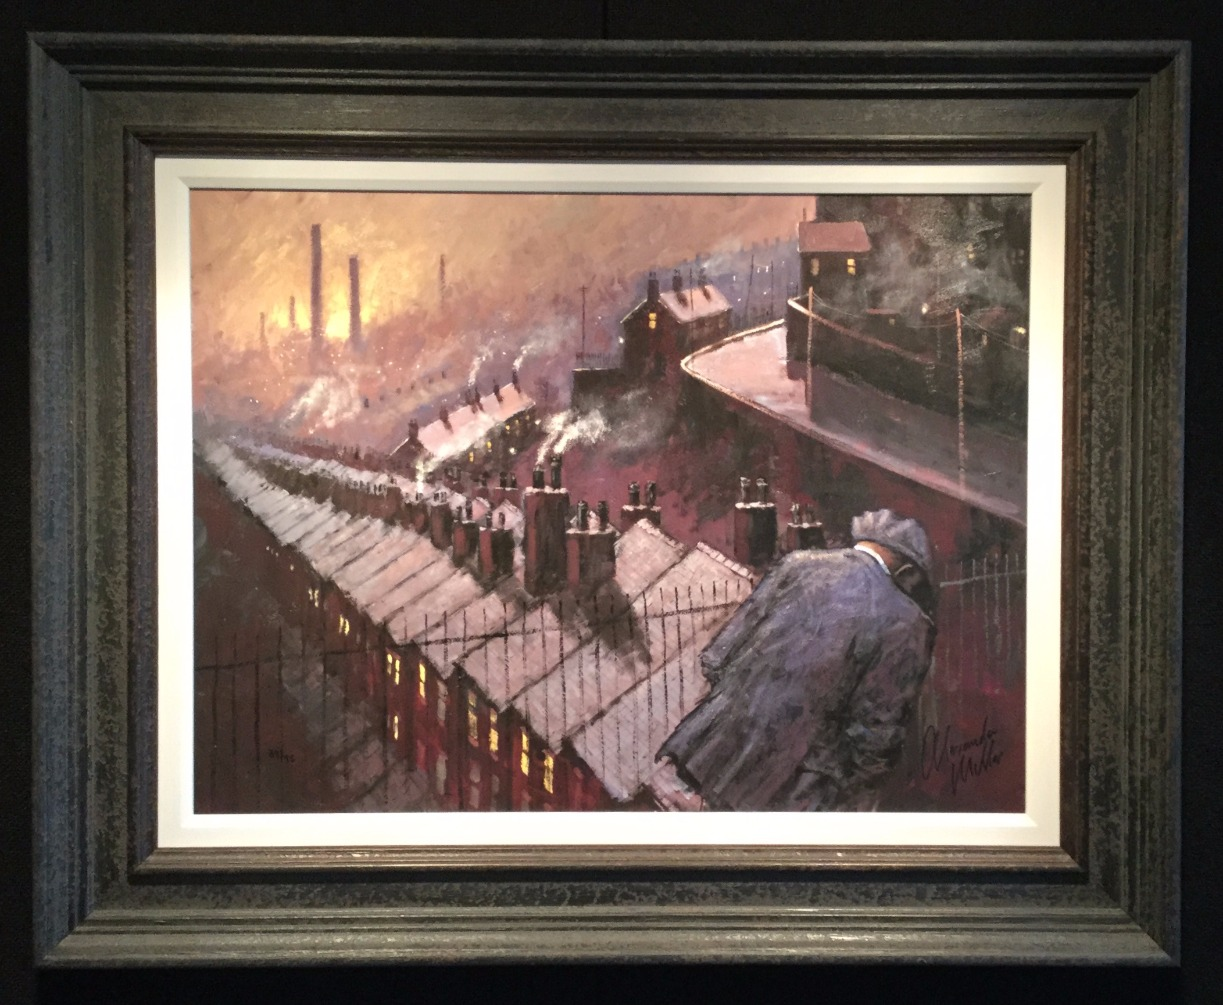 A Long and Winding Road by Alexander Millar